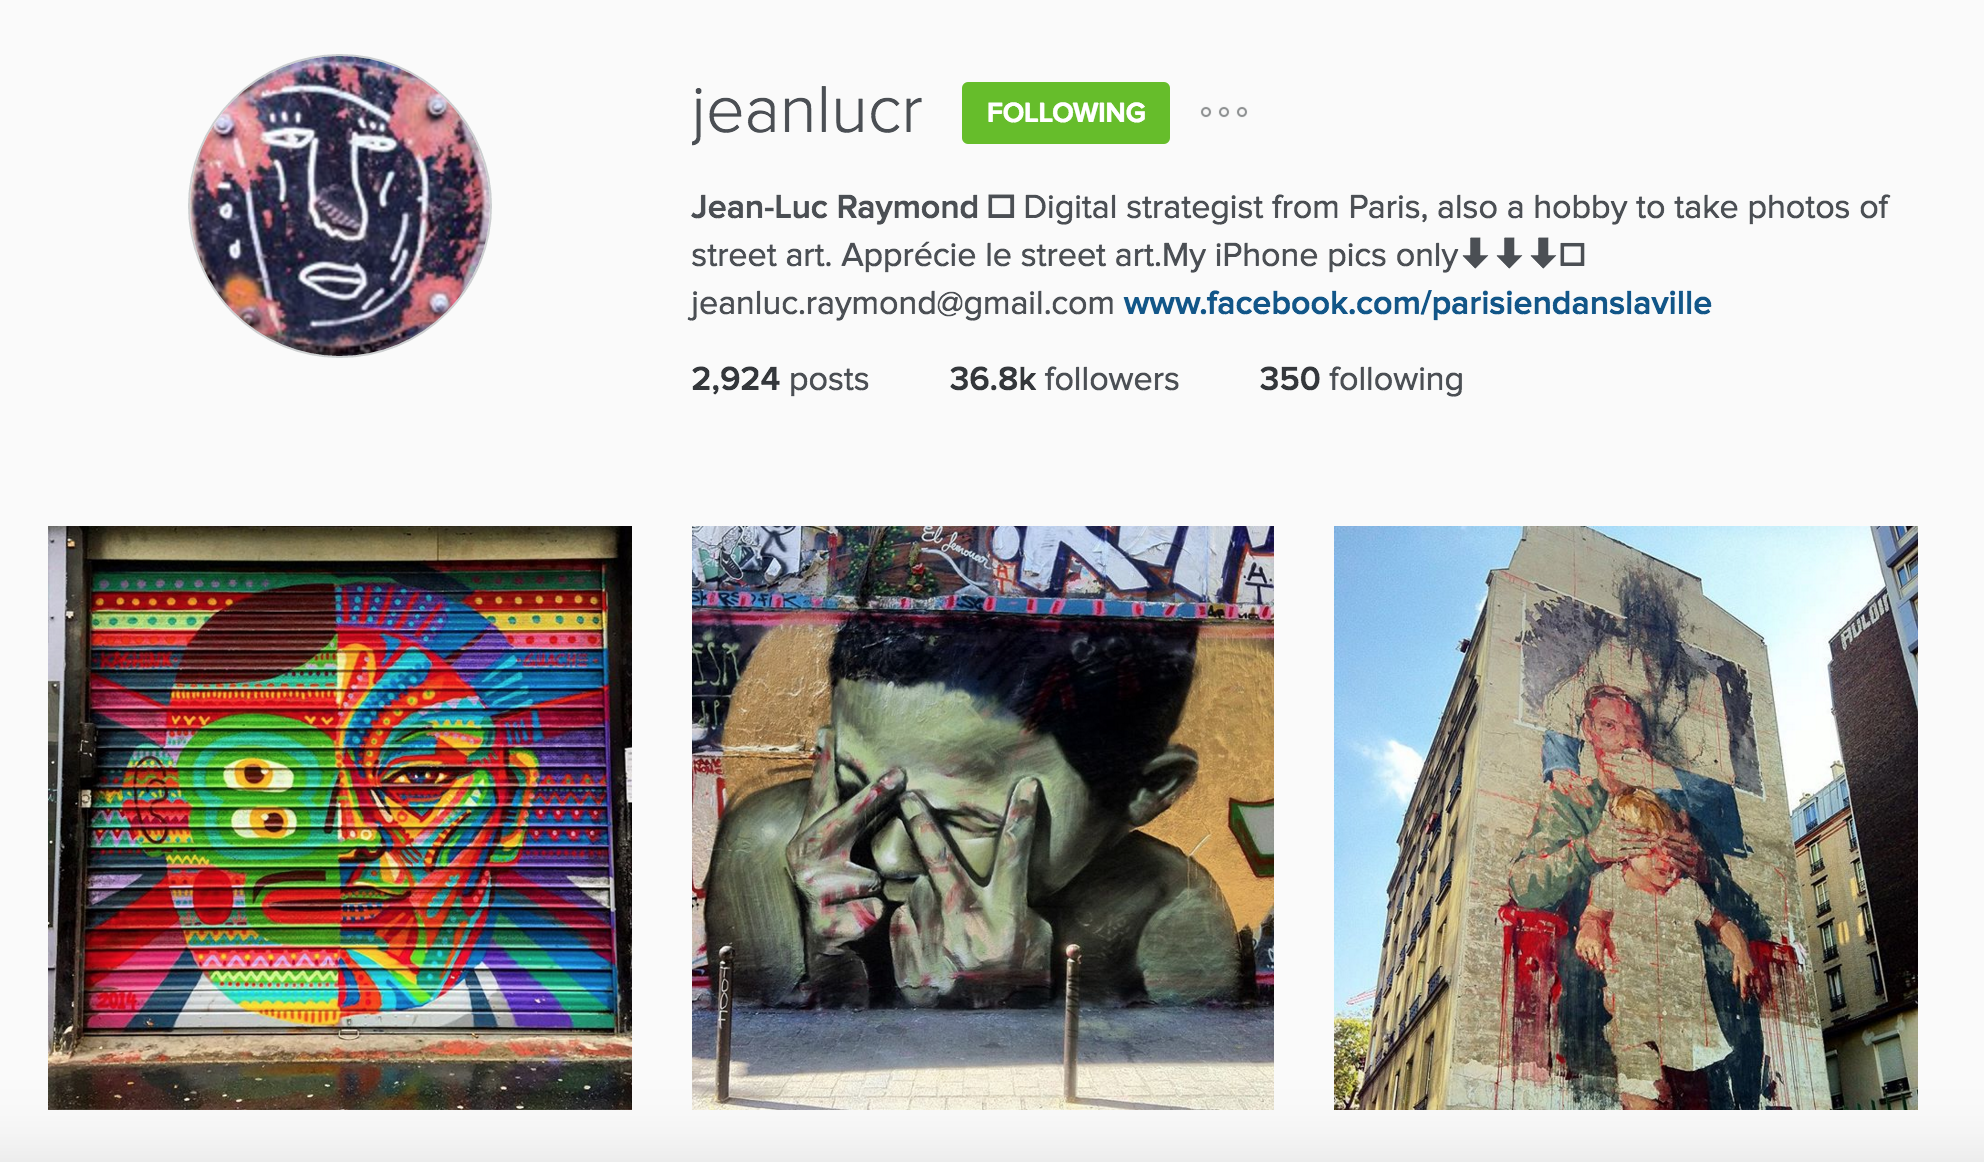 instagram cariboo paris account jean-luc raymond street art